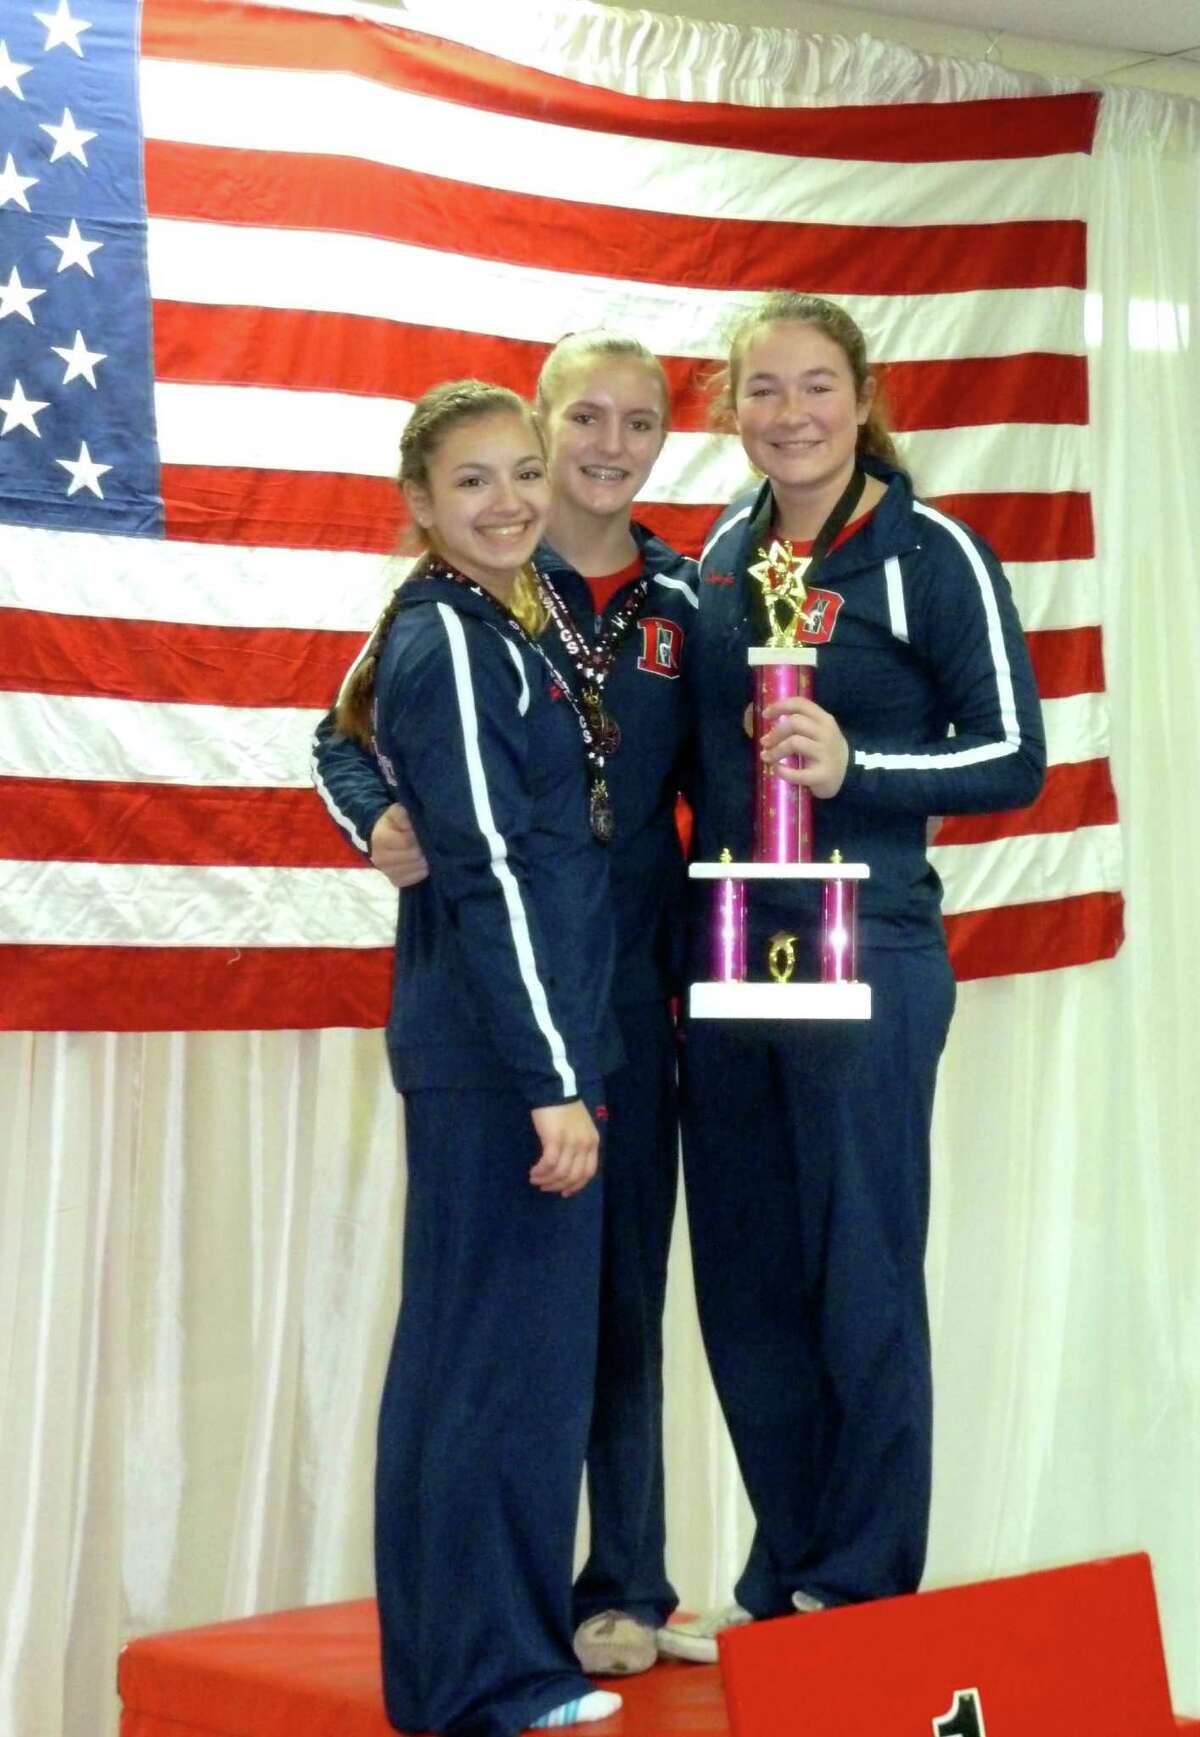 Darien Level 8 gymnasts Perri Mirabile, Jessica Freiheit and Sam Gunn won the first place team trophy at the Snowflake Invitational meet in Wilton. Mirabile also won the All Around title for her age group.